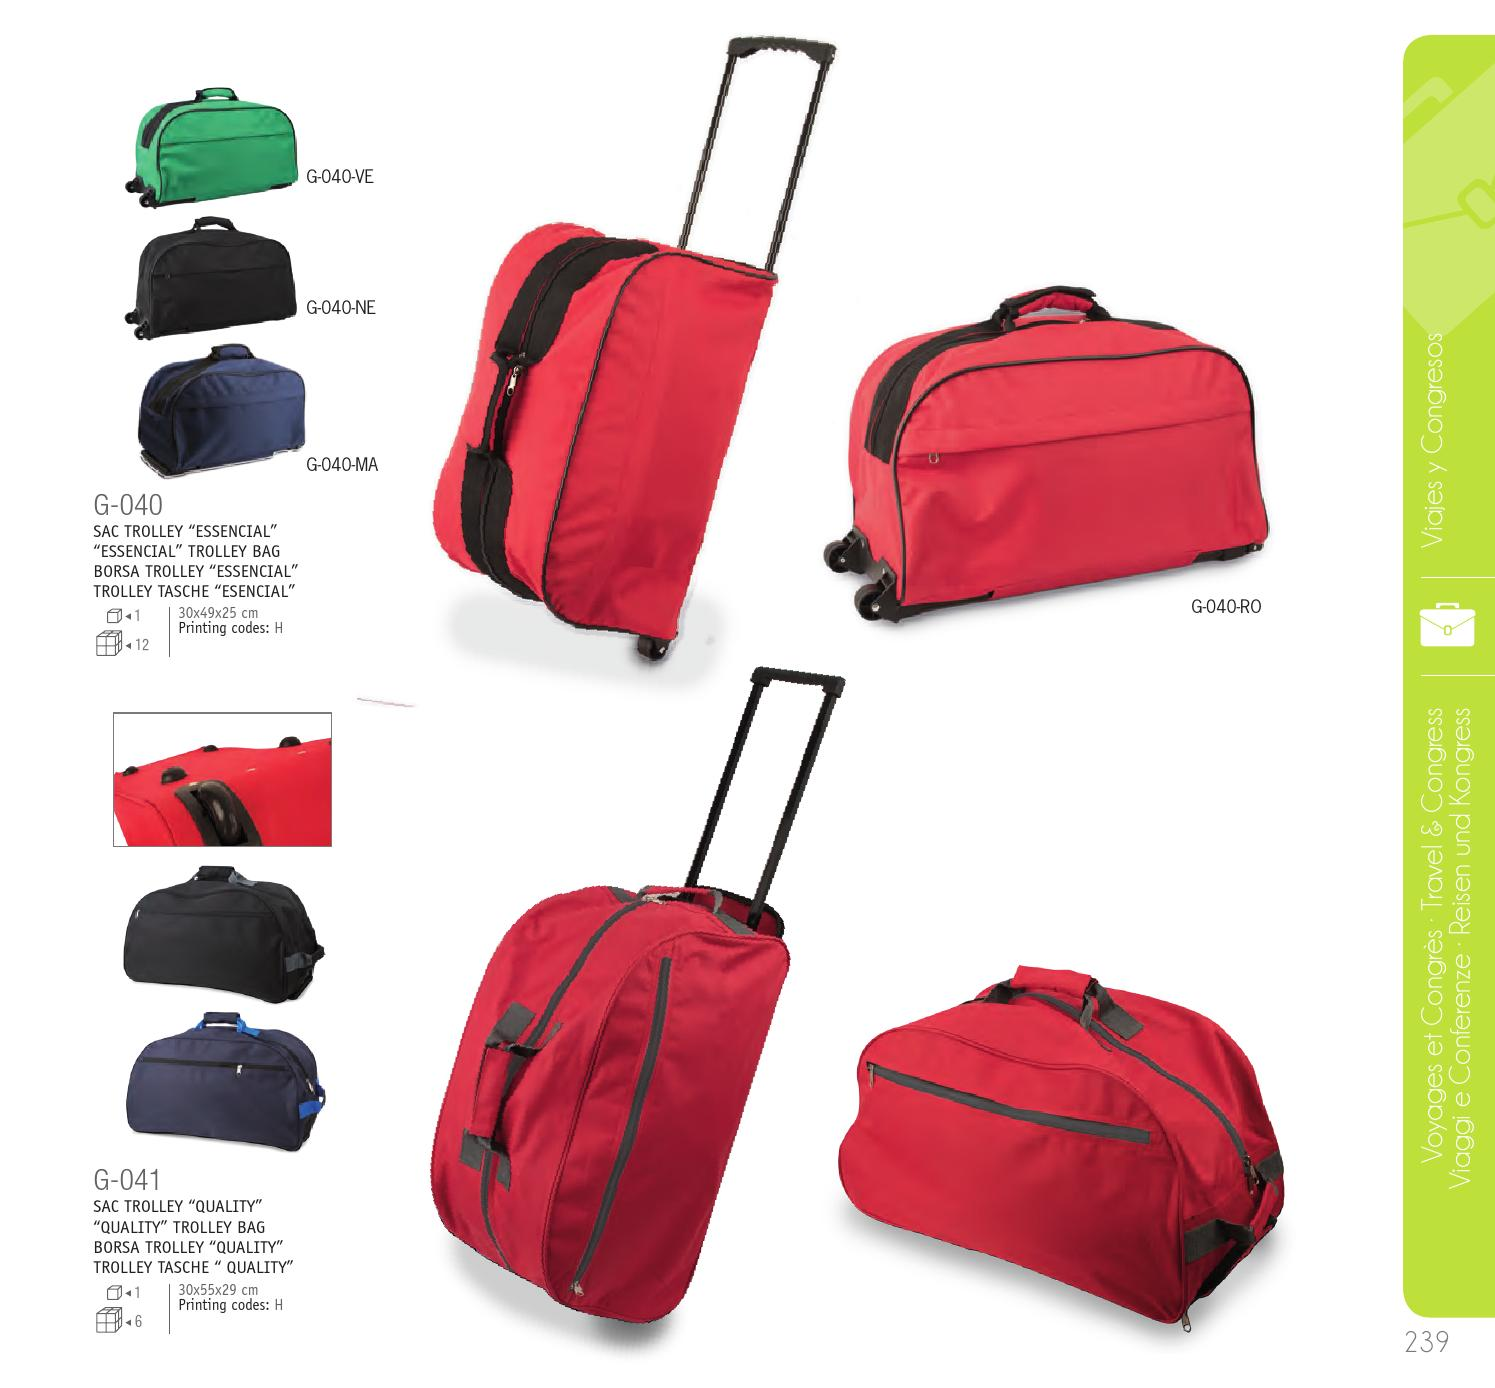 Trolley Tasche Cifra Eurocom 2014 By Eurocom Issuu